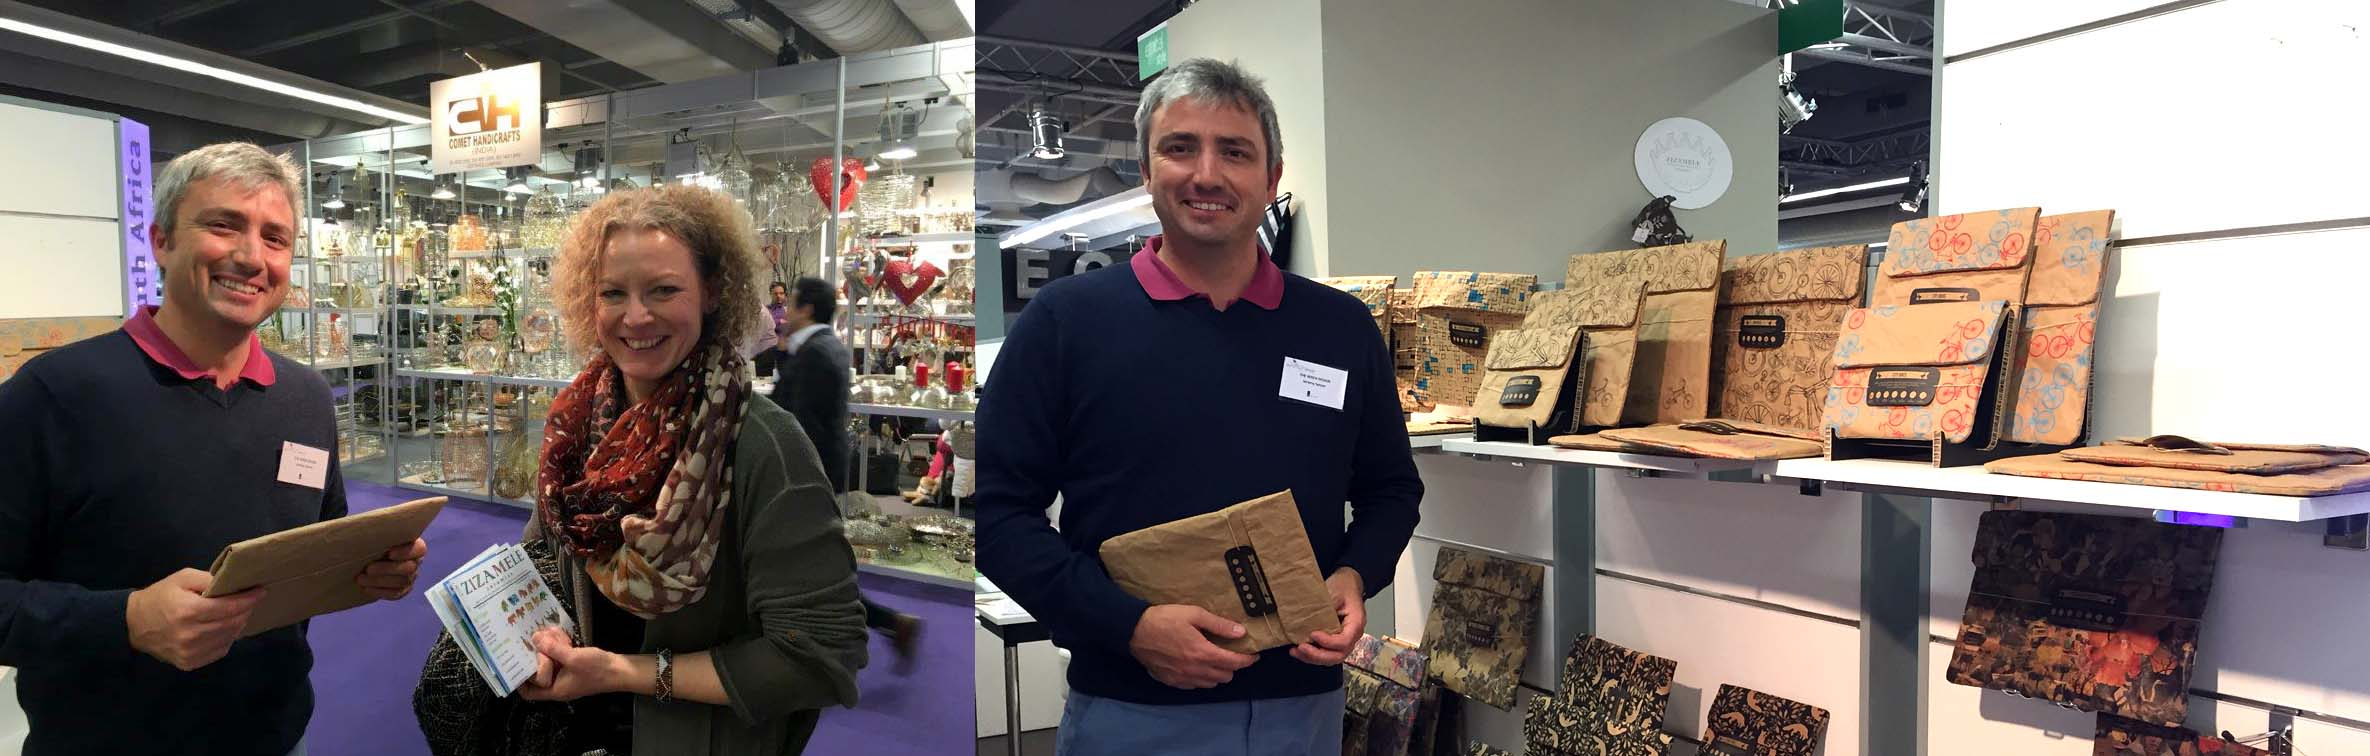 Jeremy at ambiente